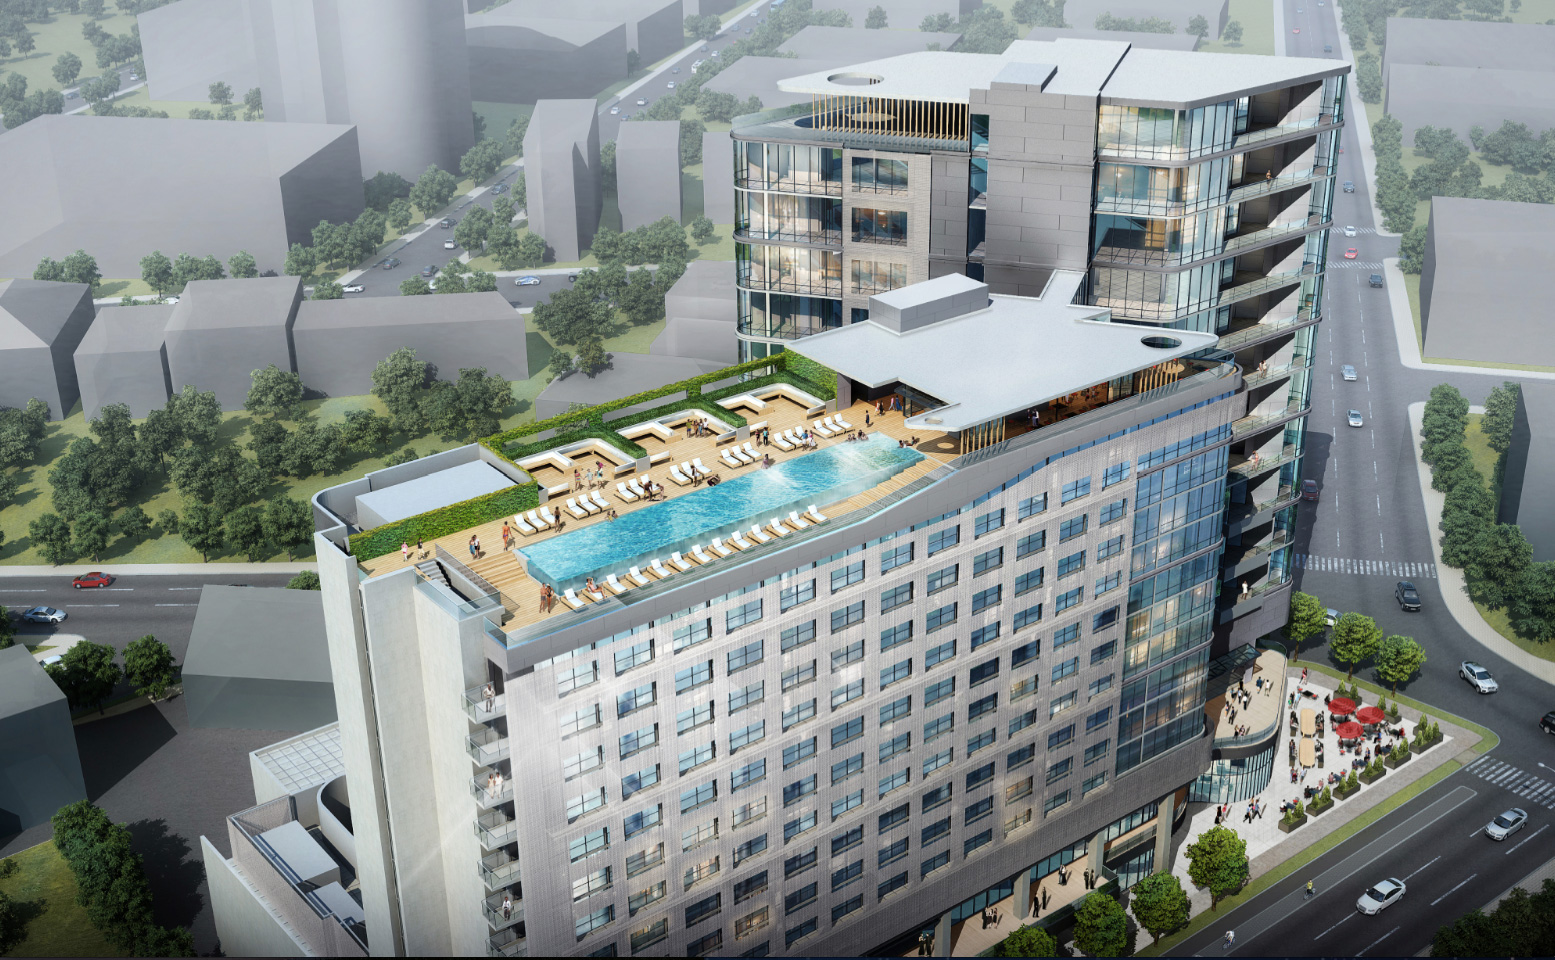 Virgin hotels nashville to open fall 2016 for Hotel building design